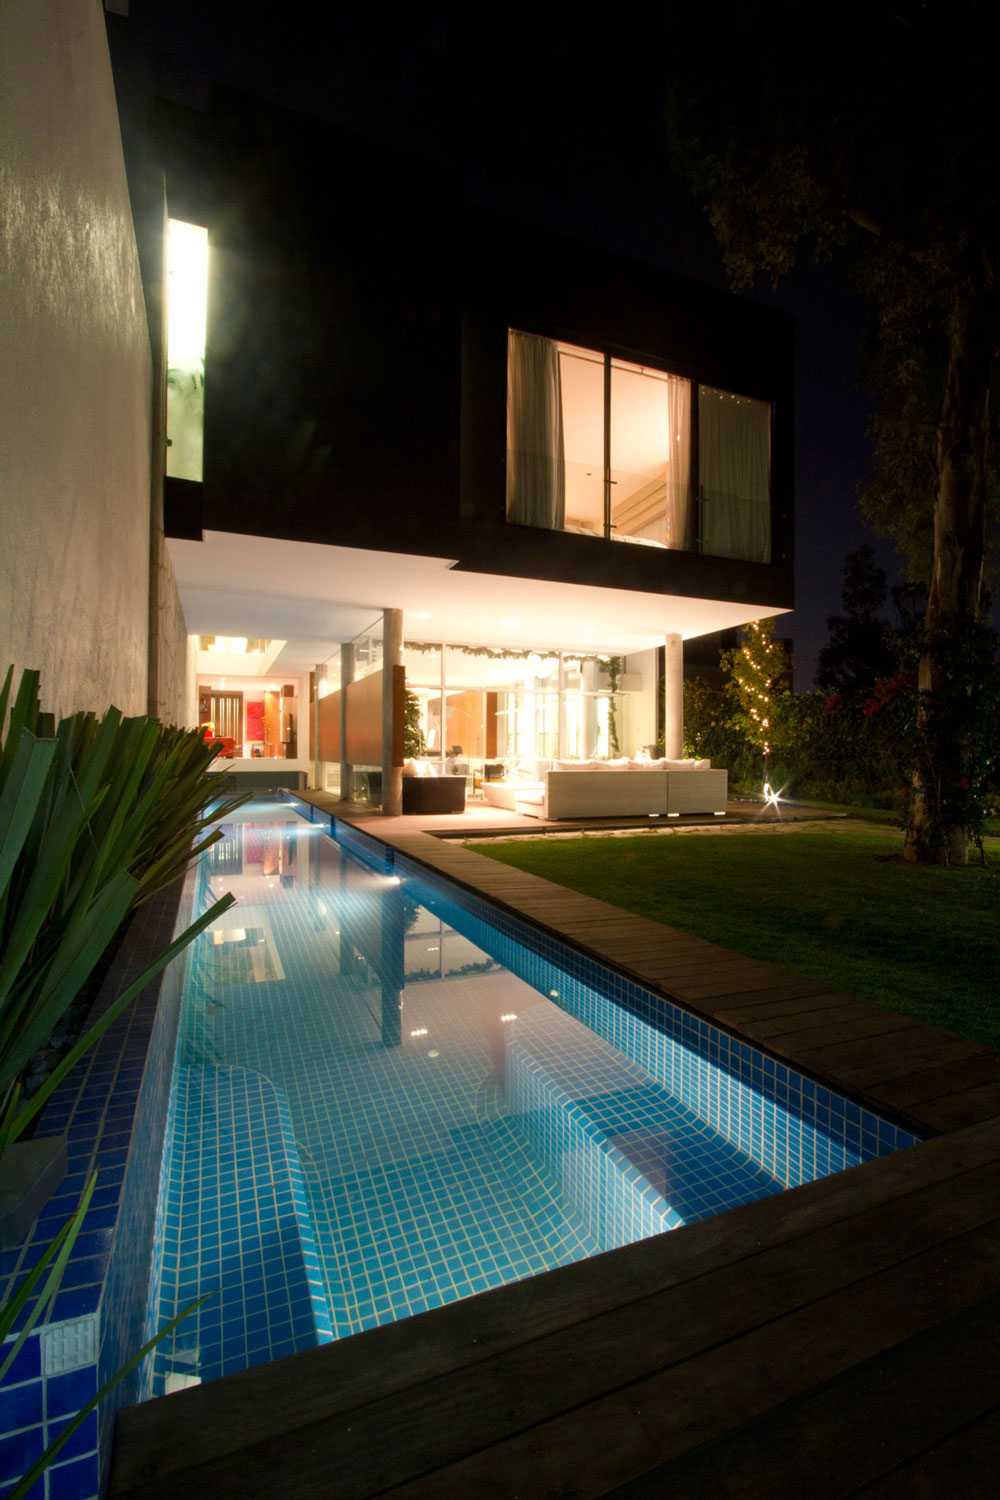 Standing Mirror Frame The Benefits Of Lap Pools And Their Distinctive Designs